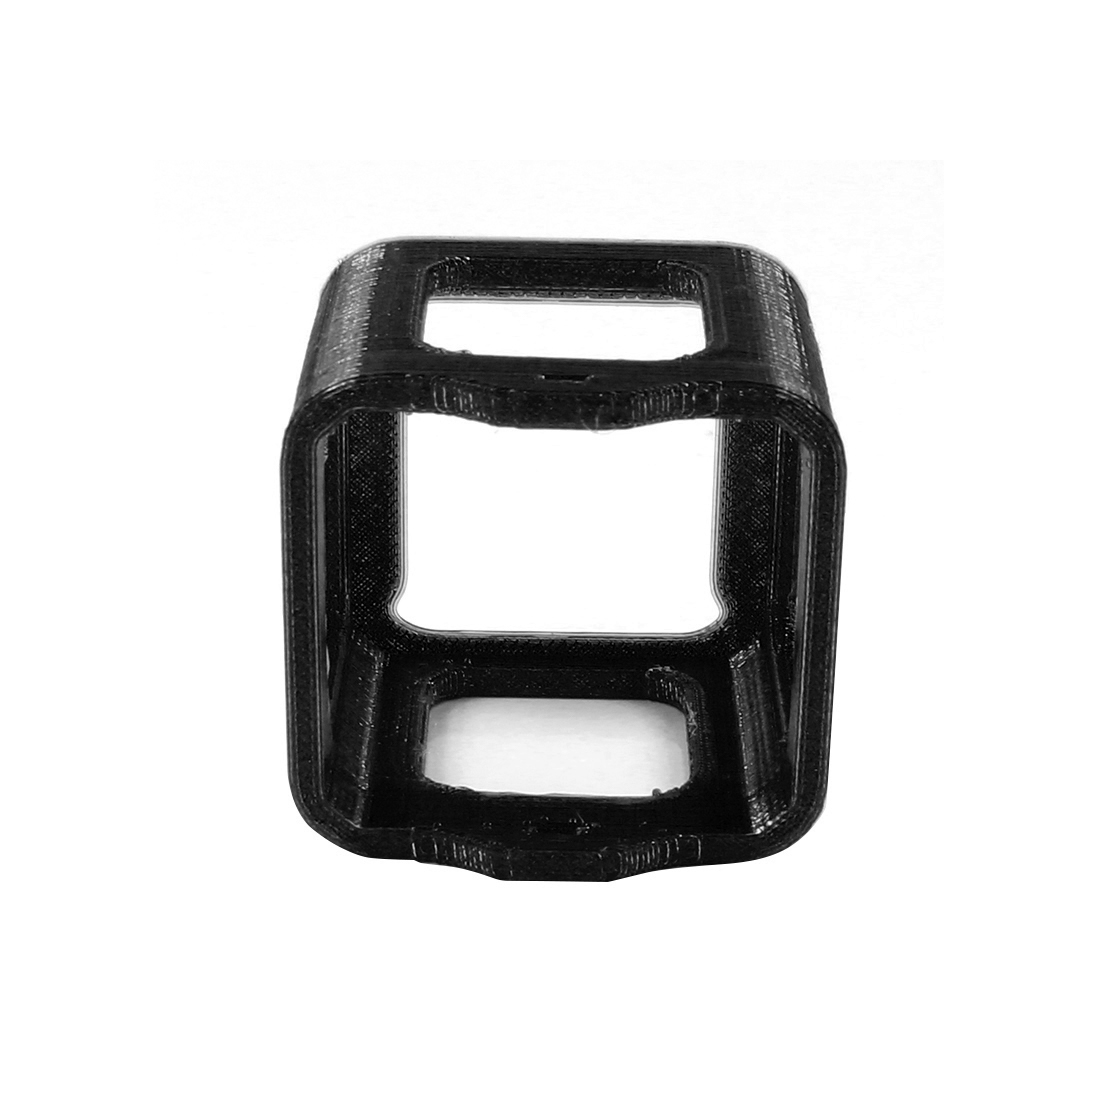 QWinOut 3D Print Camera Mount TPU 3D Printing Protection Frame 3D Printed for RunCam 3S FPV Camera Red